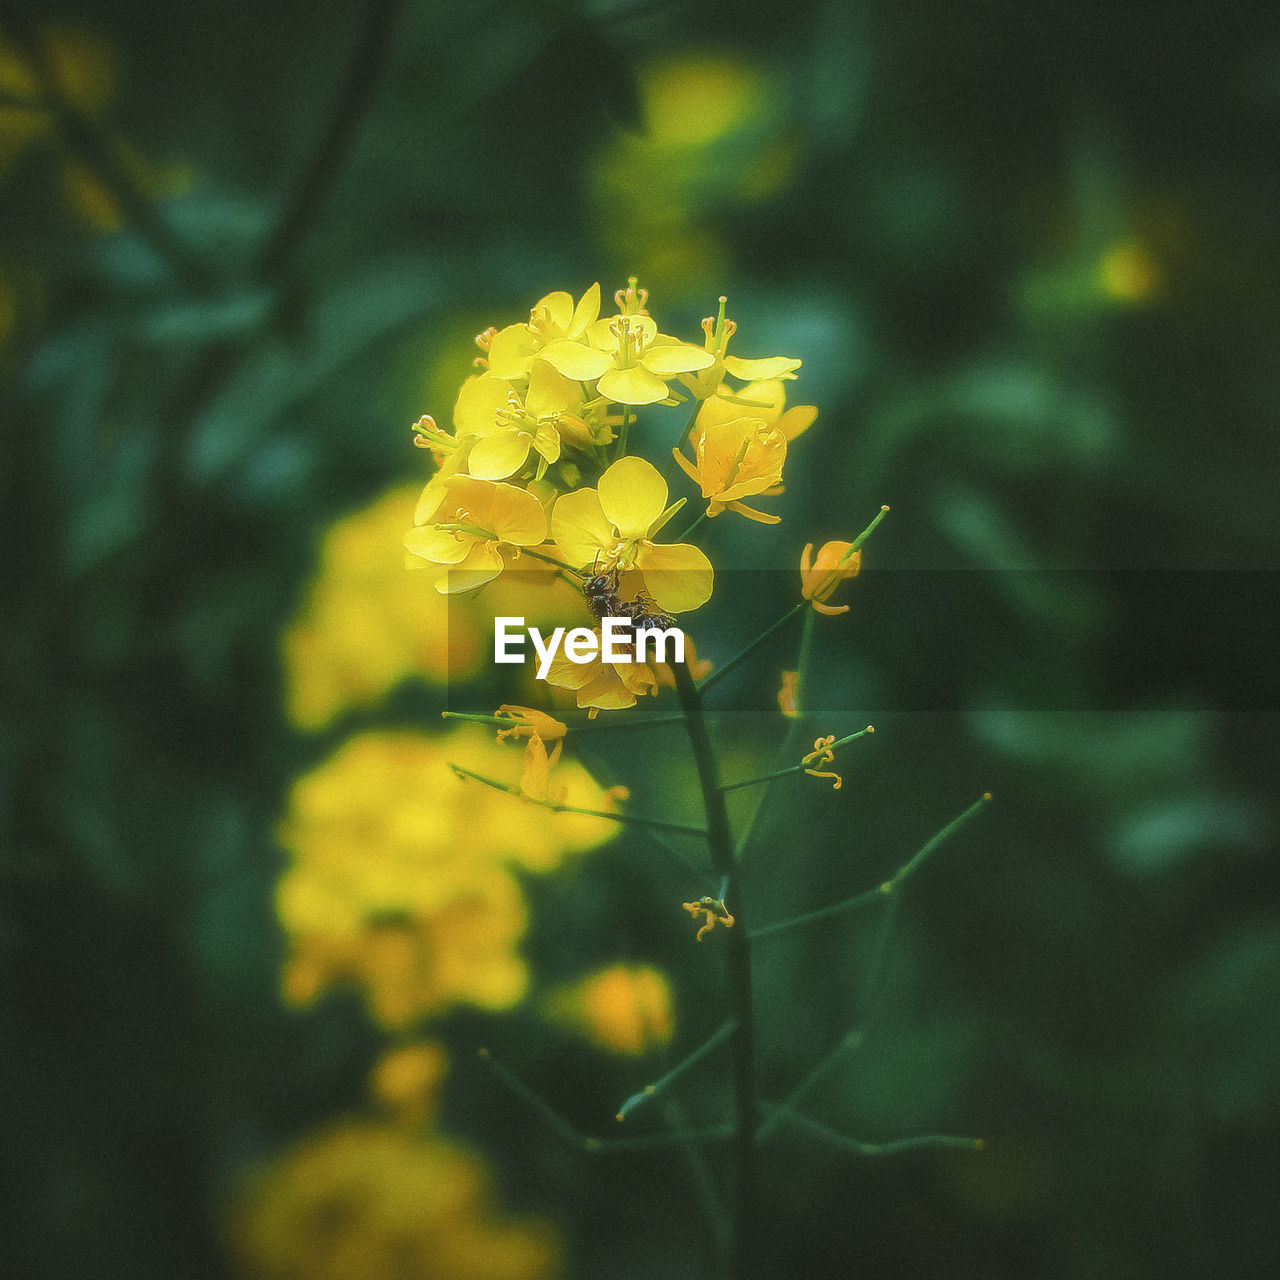 flower, yellow, nature, beauty in nature, growth, fragility, plant, petal, blossom, blooming, freshness, no people, outdoors, mustard plant, day, flower head, close-up